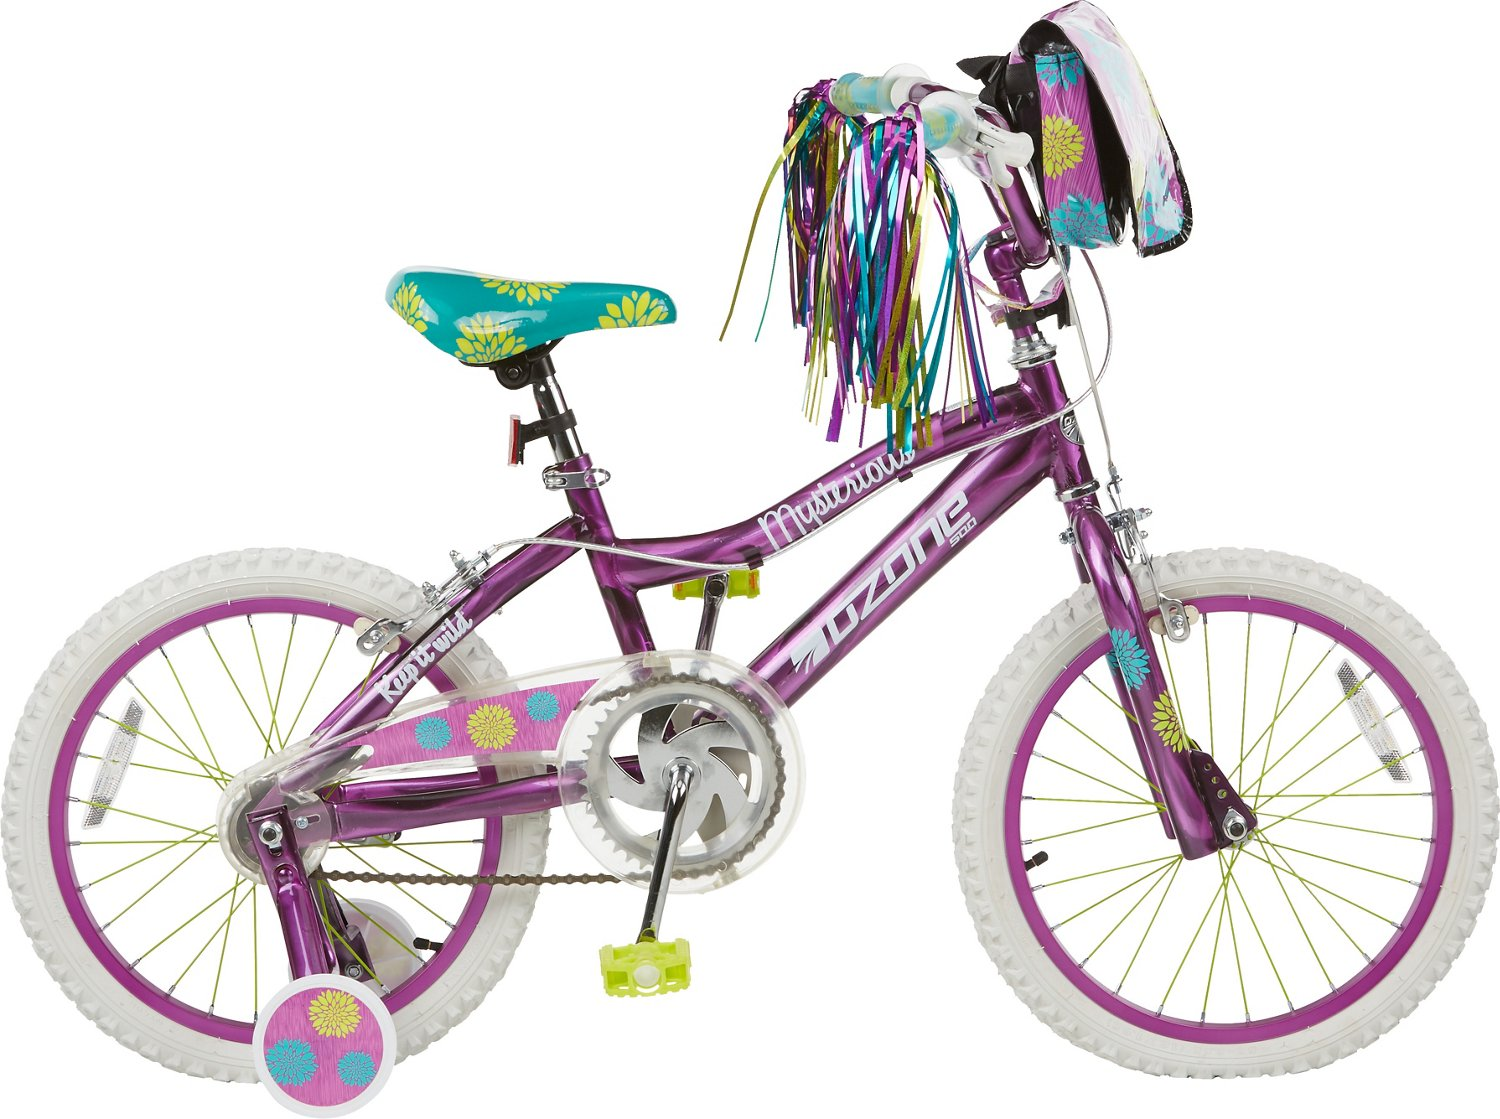 e30918e1efb Display product reviews for Ozone 500 Girls' 18 in Mysterious Bike